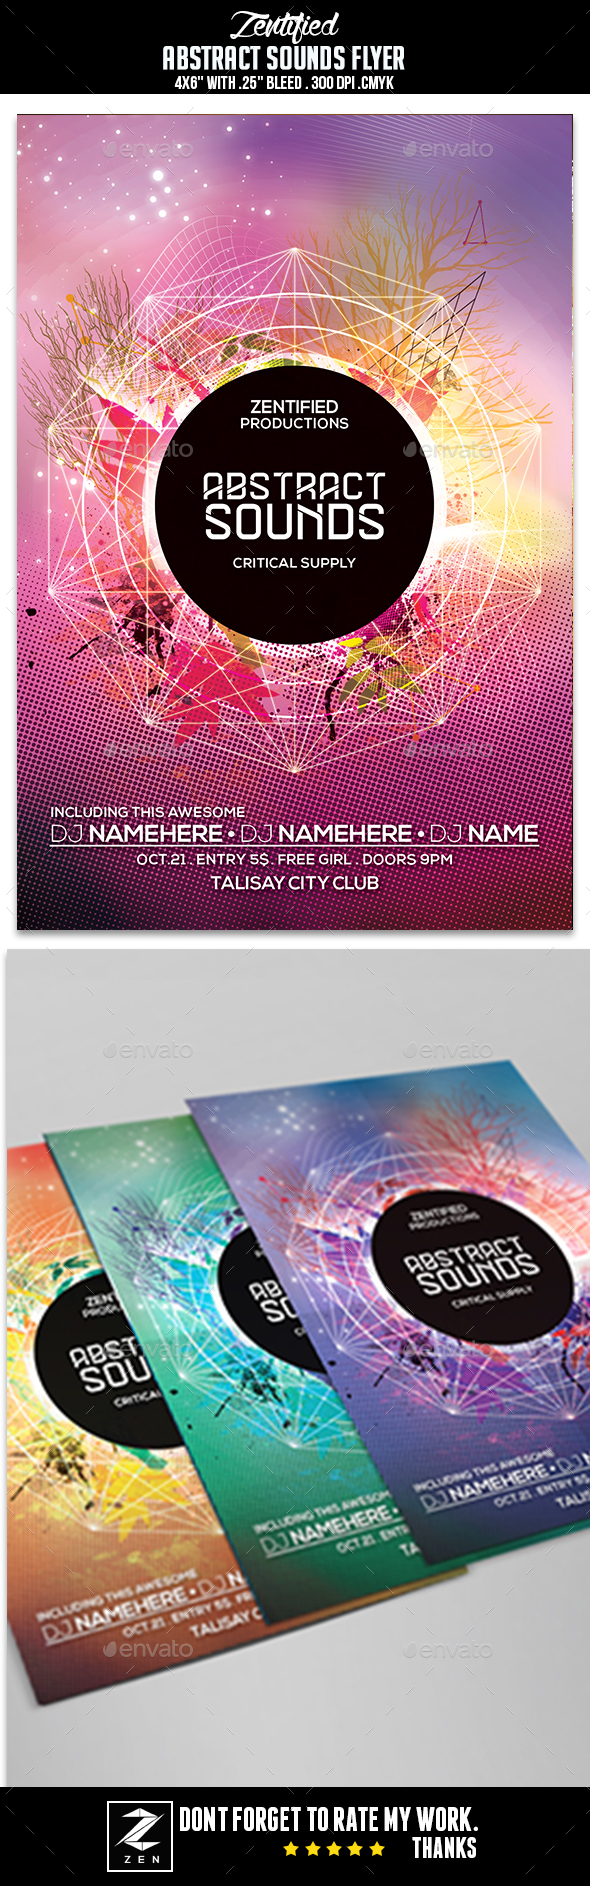 Abstract Sounds Flyer - Clubs & Parties Events